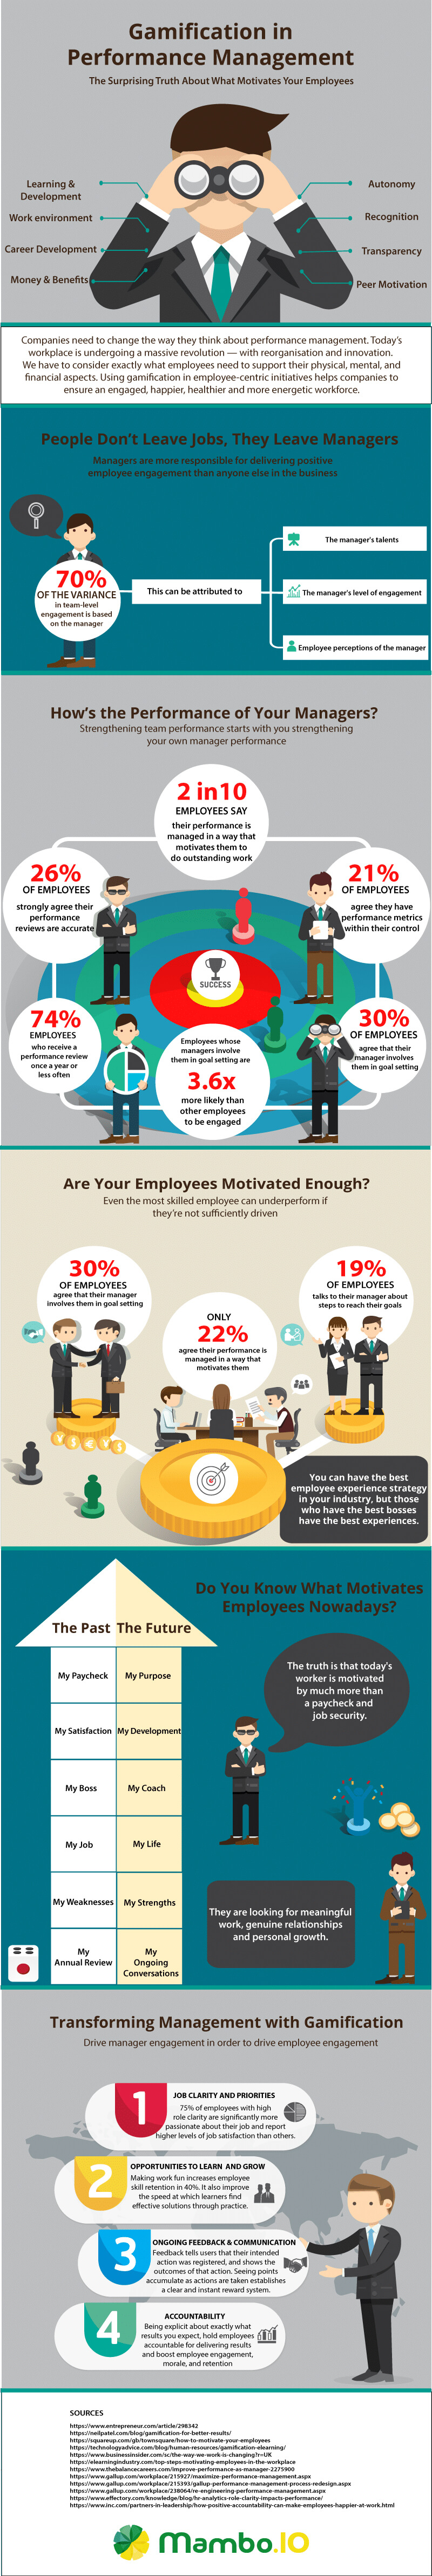 performance_management_infographic